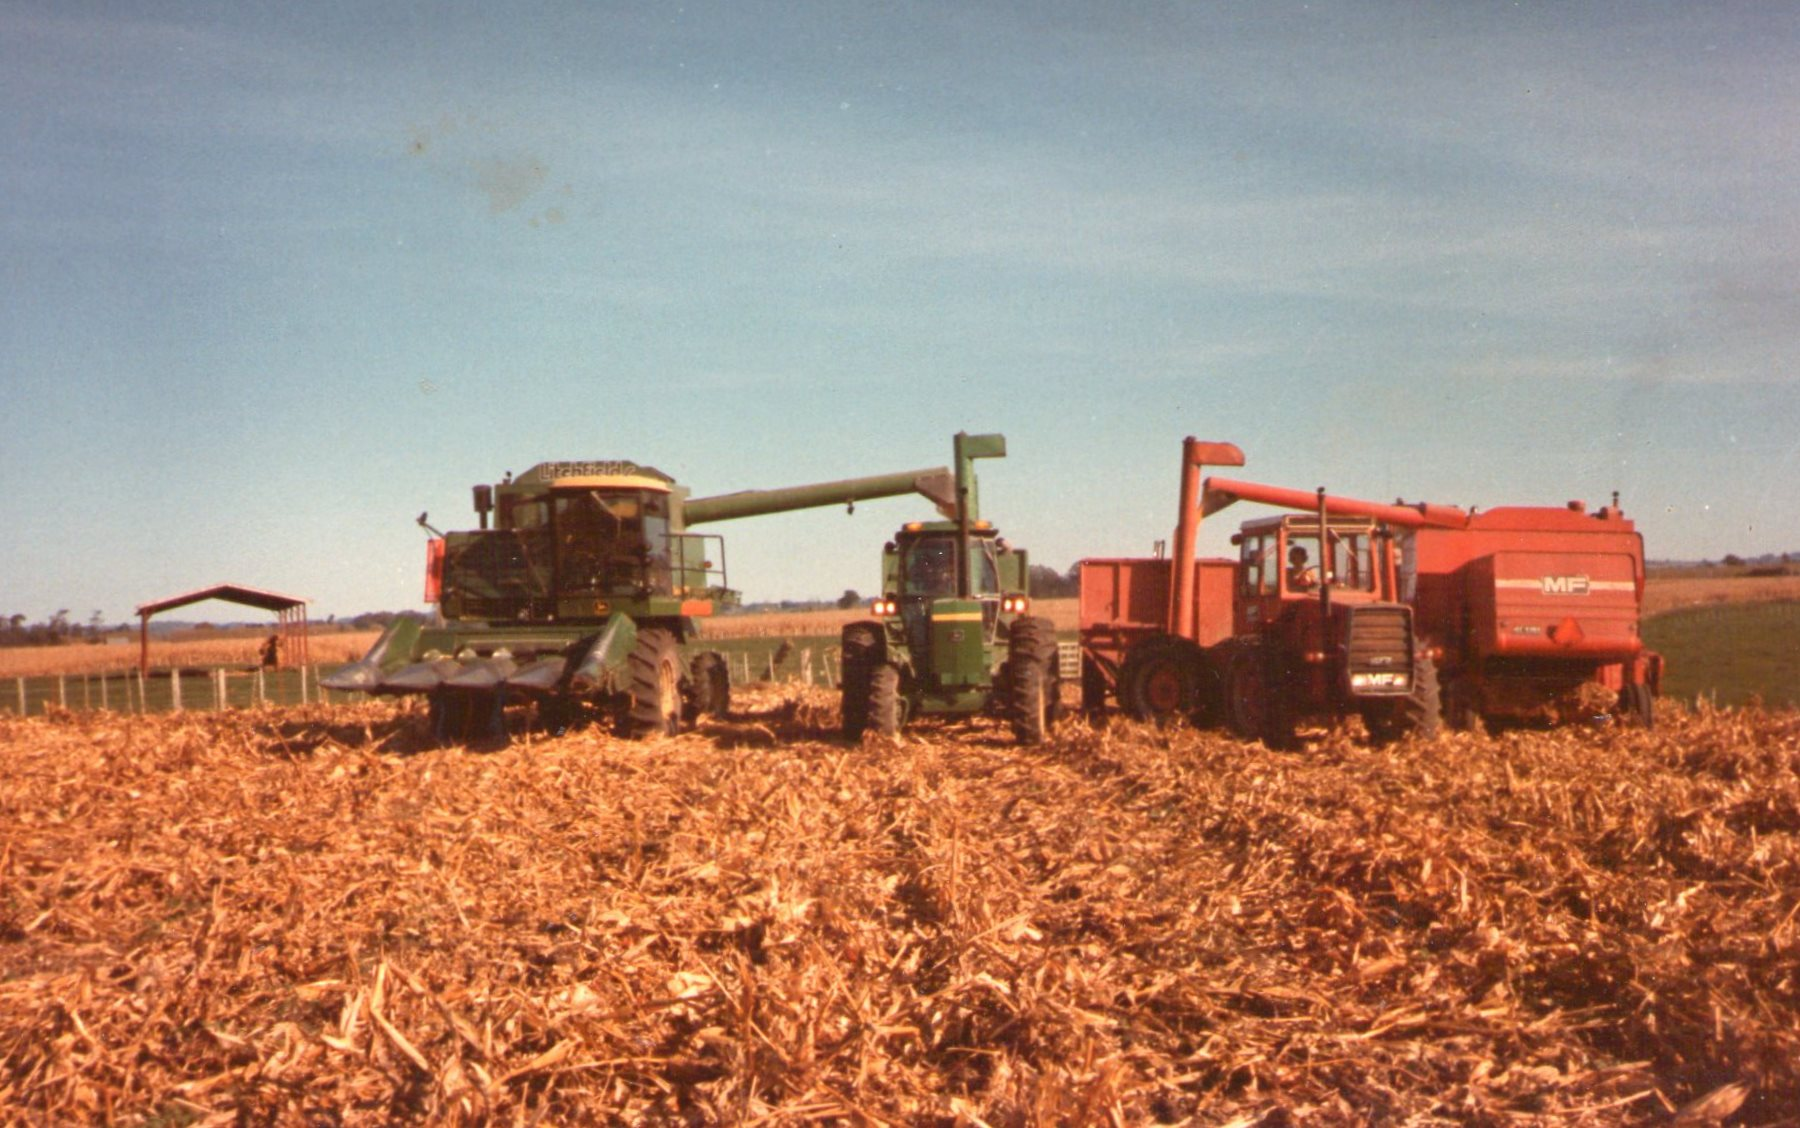 Combines then and now